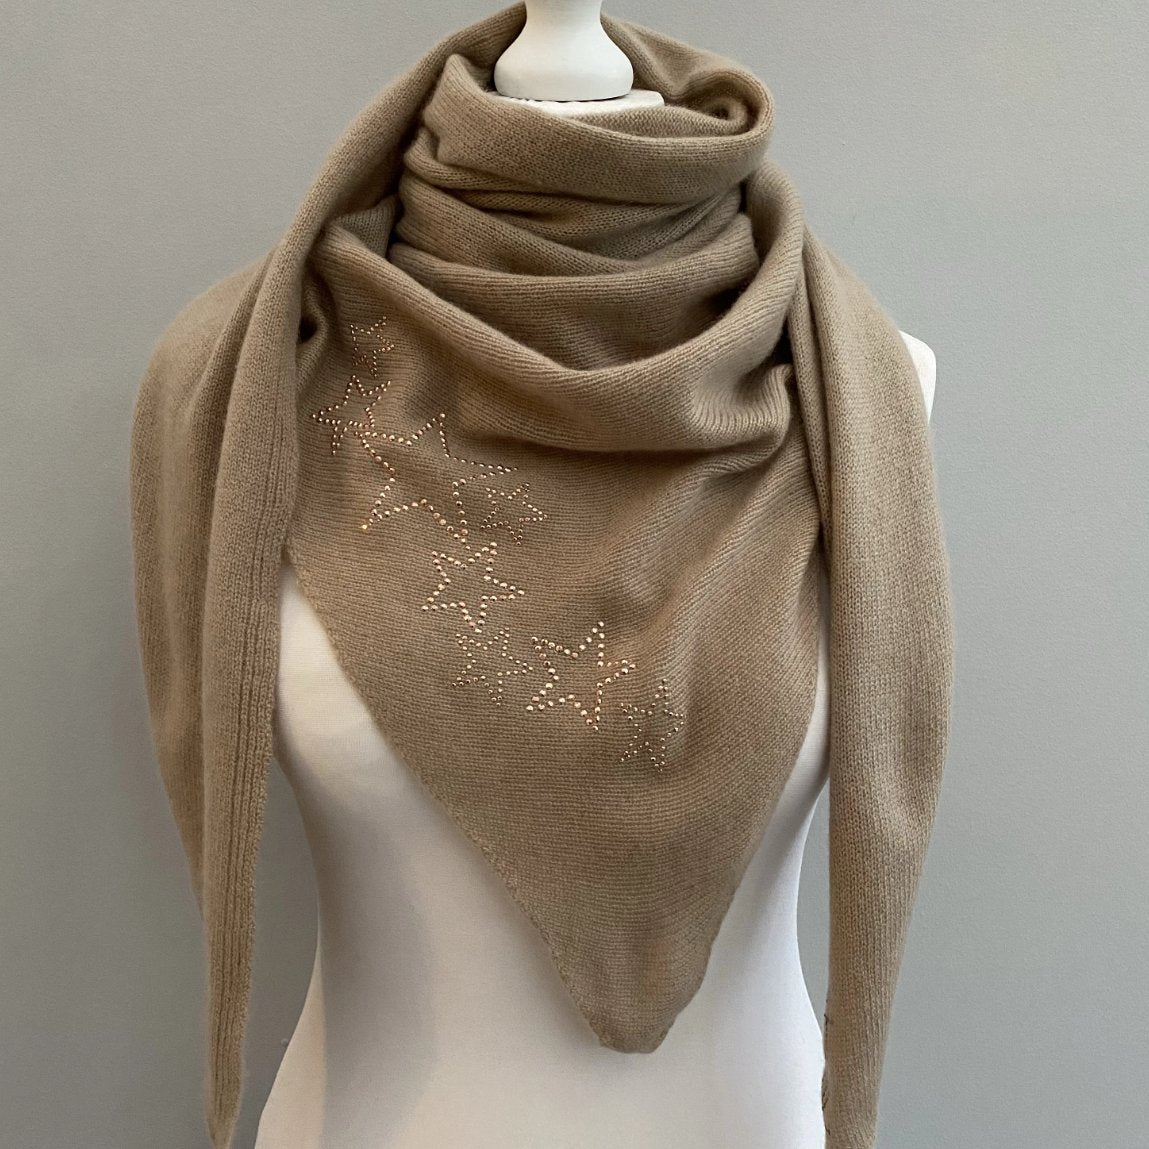 Knitted cashmere triangle scarf STARS (taupe/rose gold)